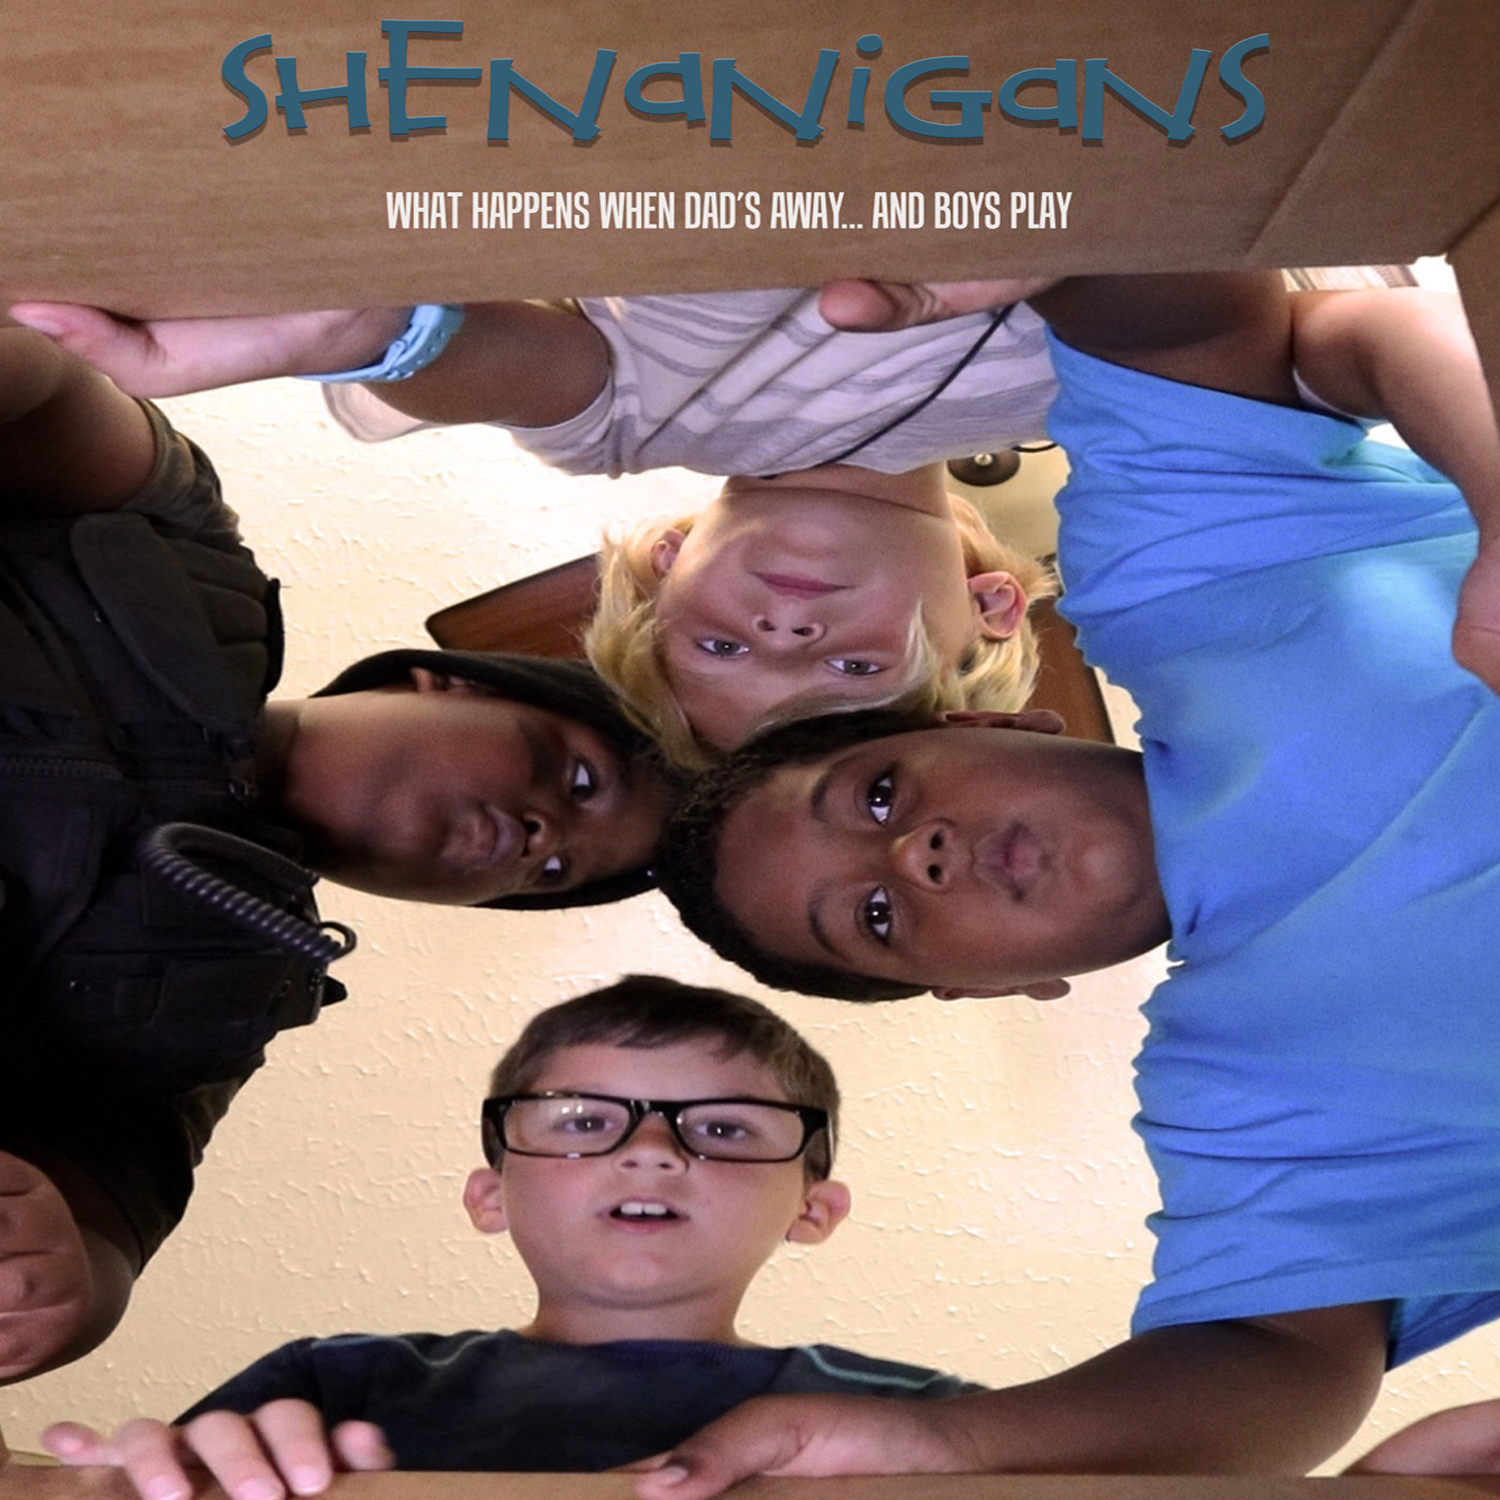 Shenanigans The Move Cover